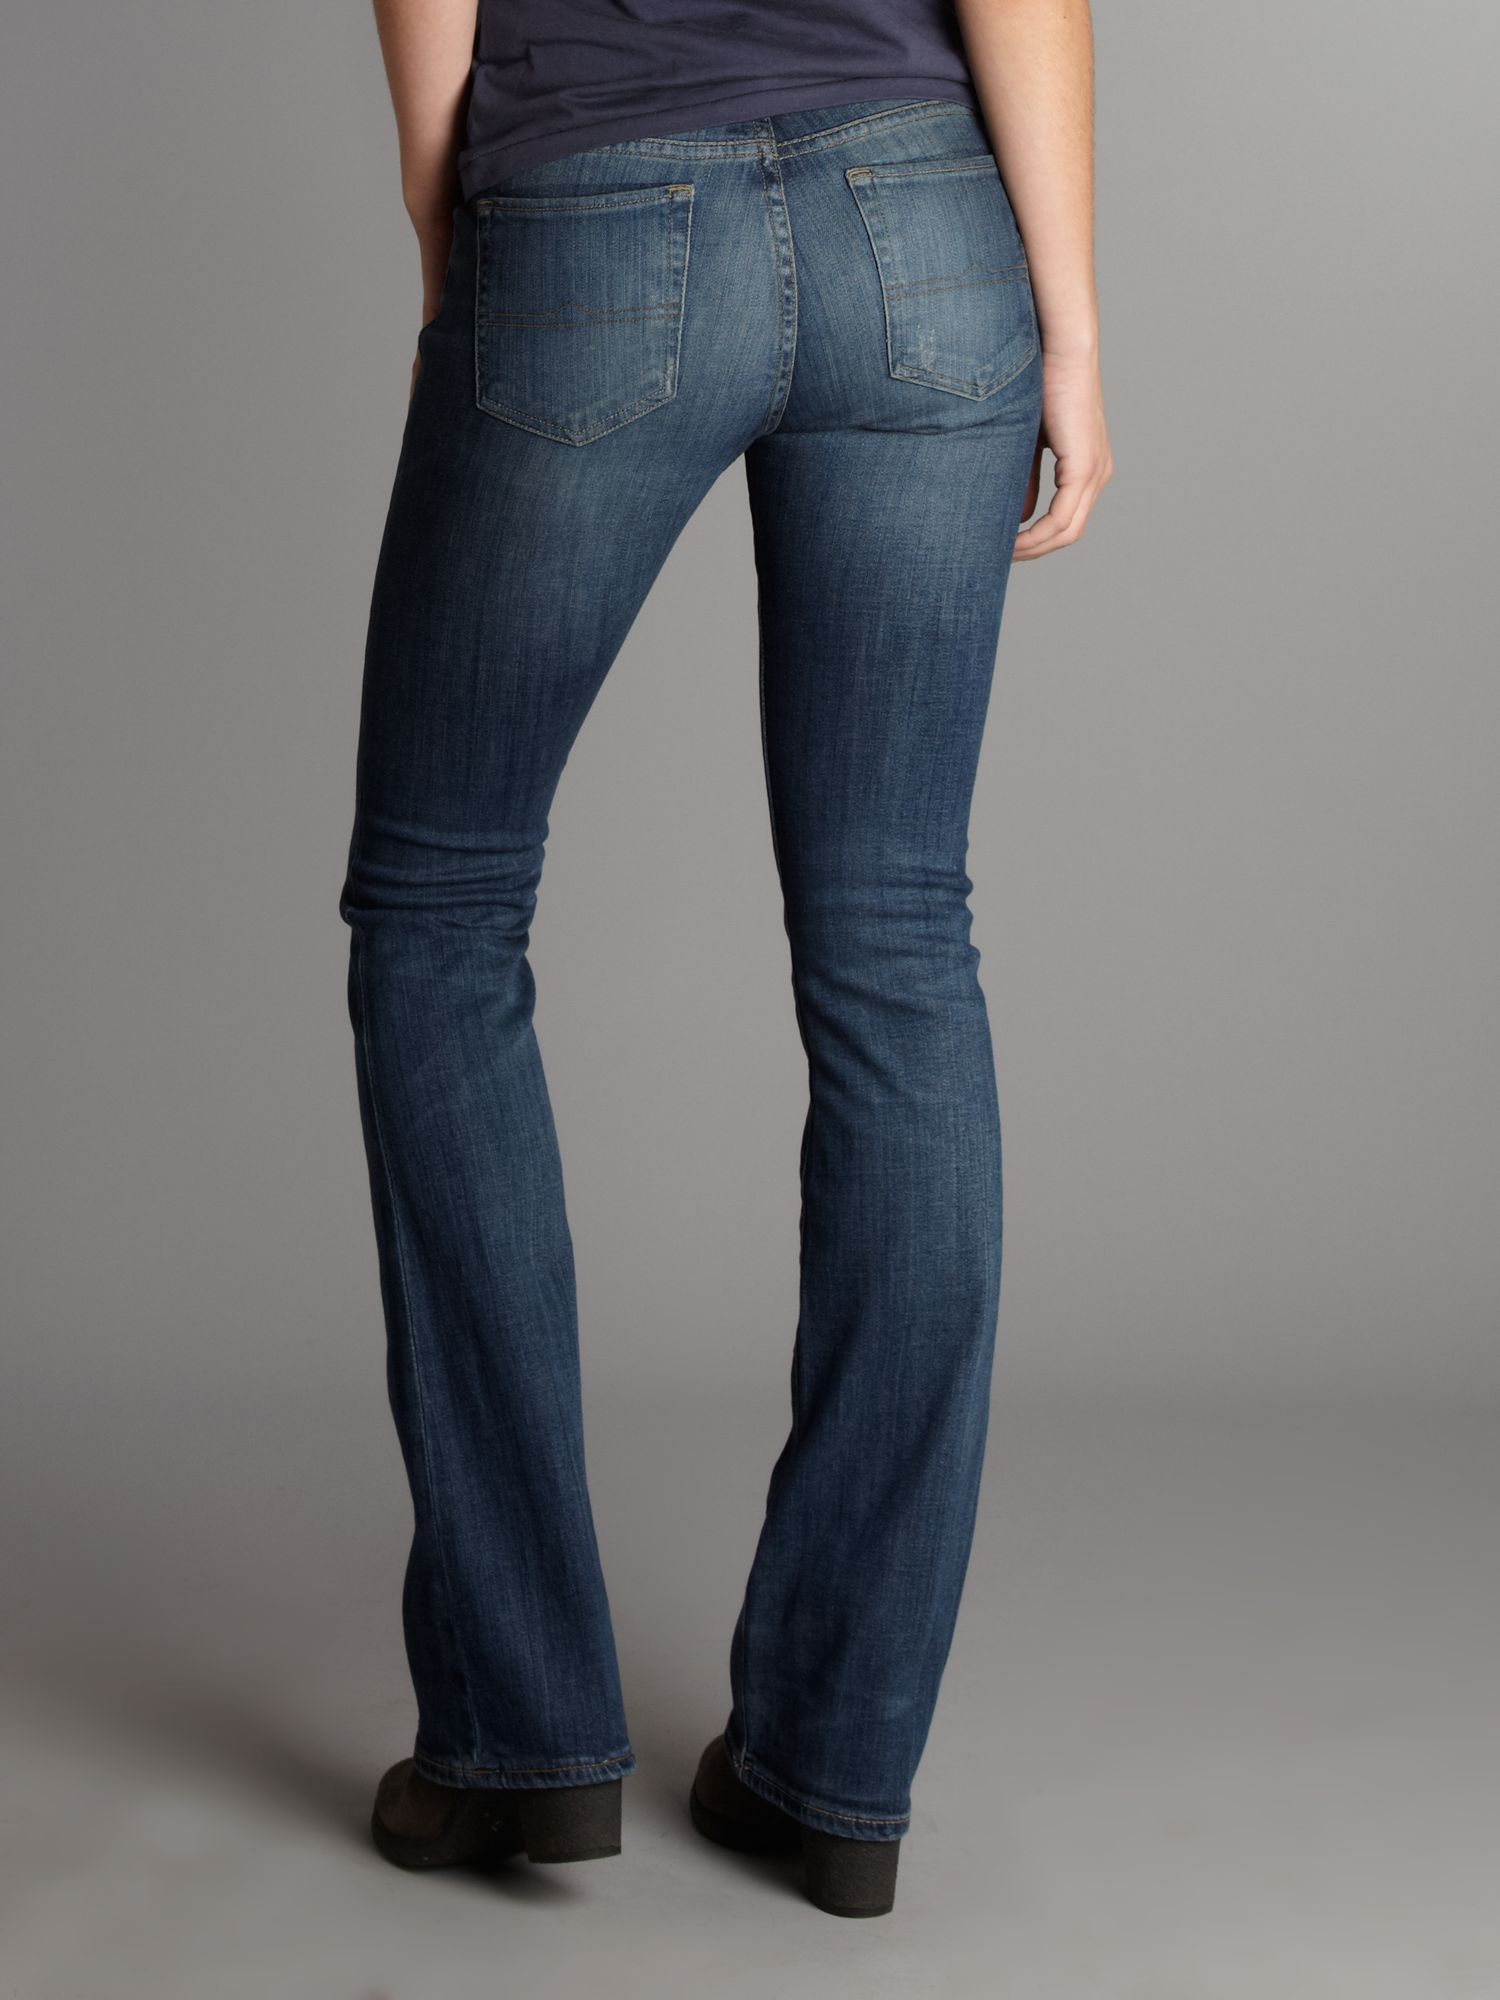 Denim & supply ralph lauren Slim Bootcut Jean in Blue | Lyst